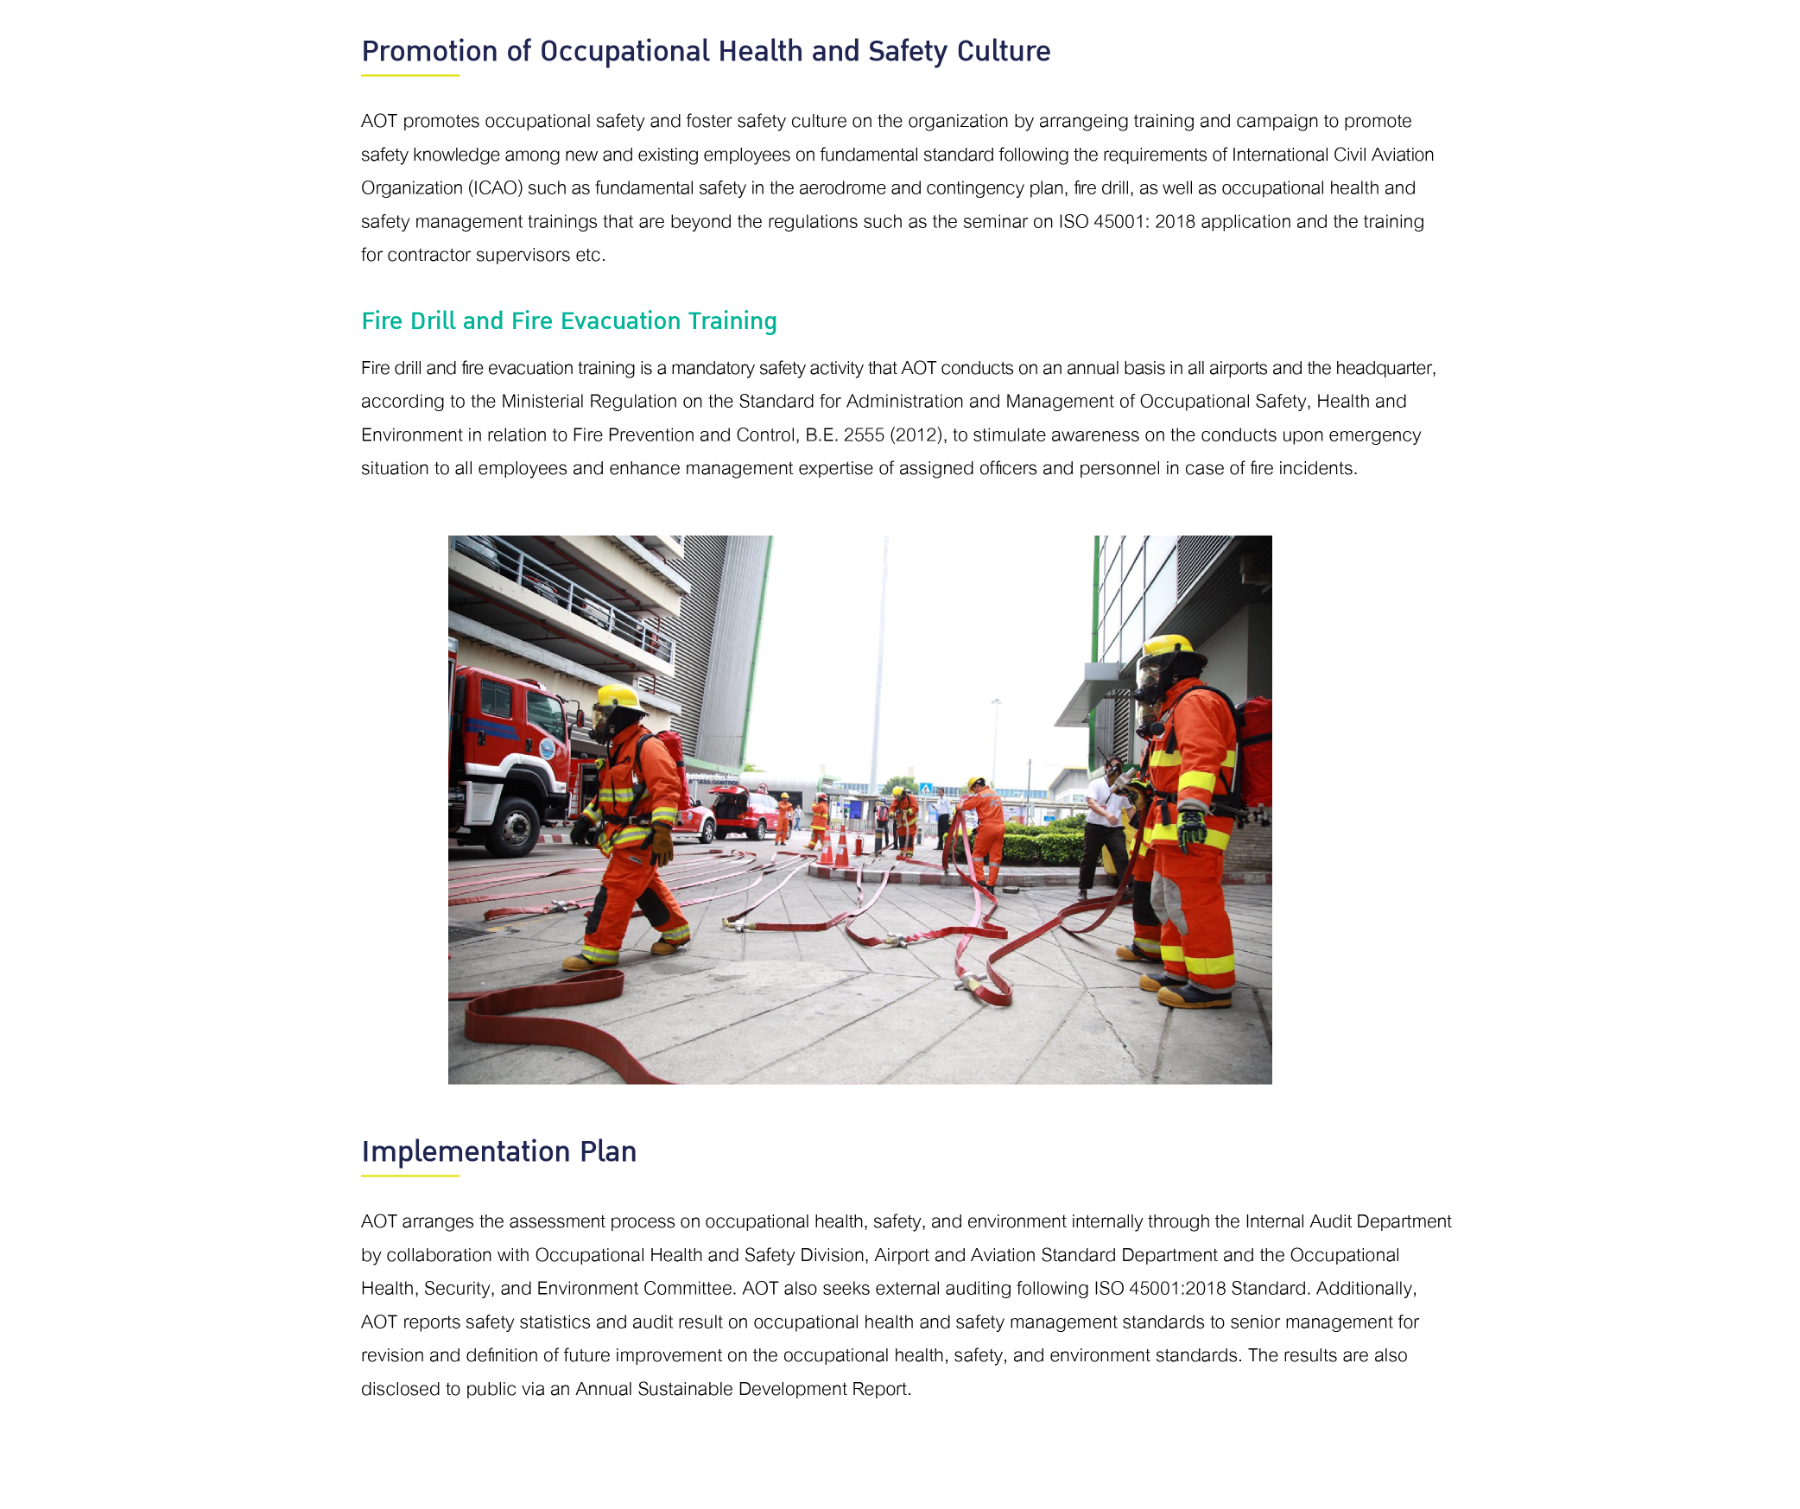 Promotion of Occupational Health and Safety Culture Fire Drill and Fire Evacuation Training Implementation Plan